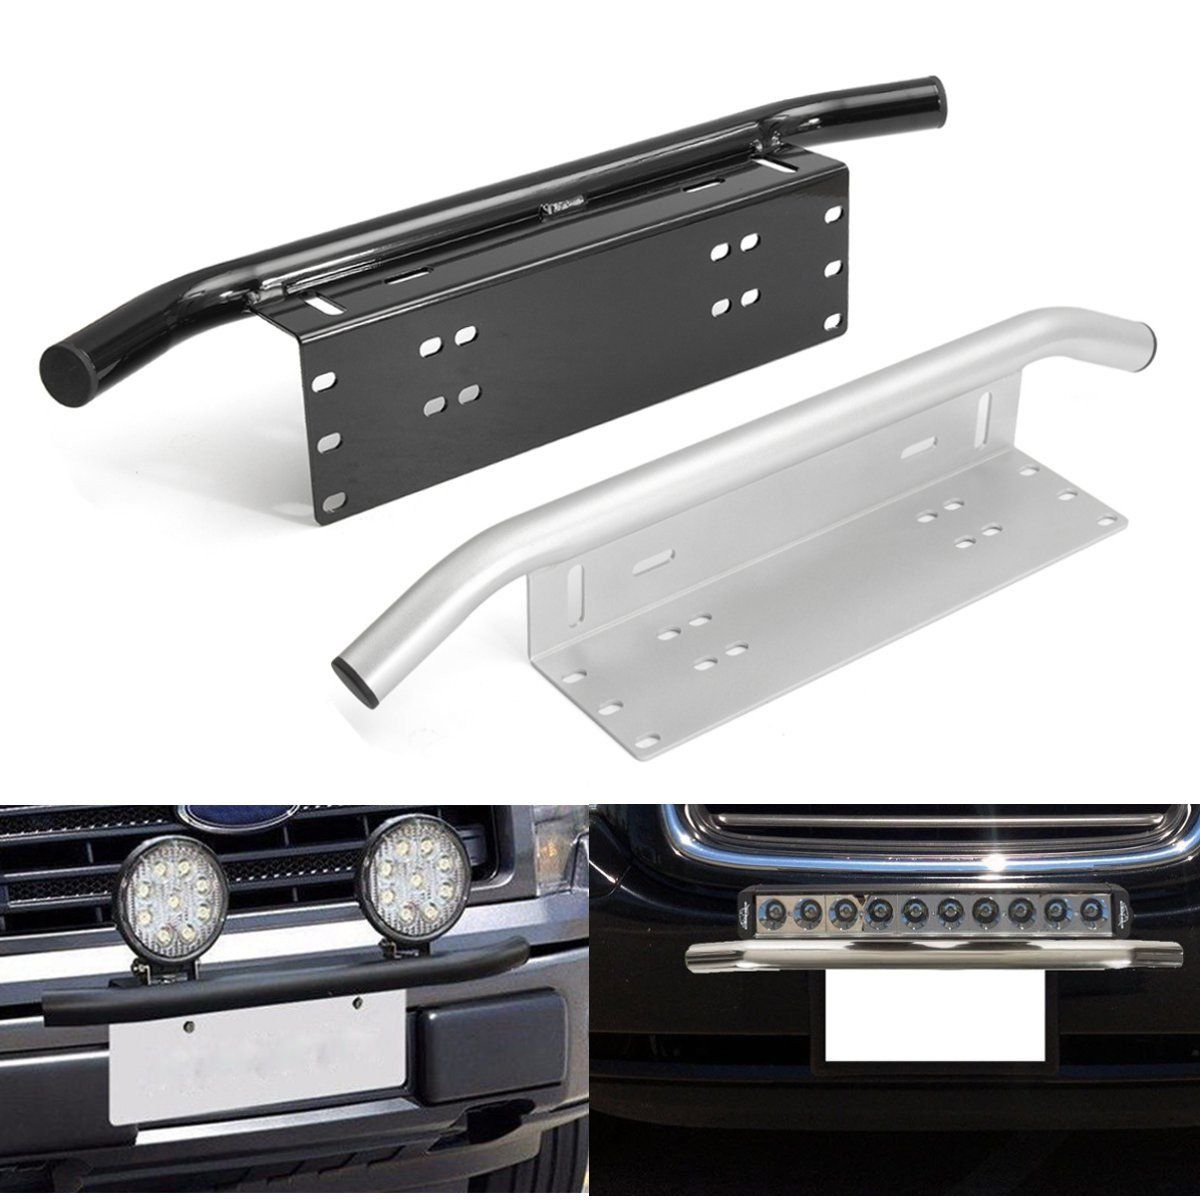 Black bull bar front bumper license plate mount bracket holder black bull bar front bumper license plate mount bracket holder offroad light bar mozeypictures Gallery